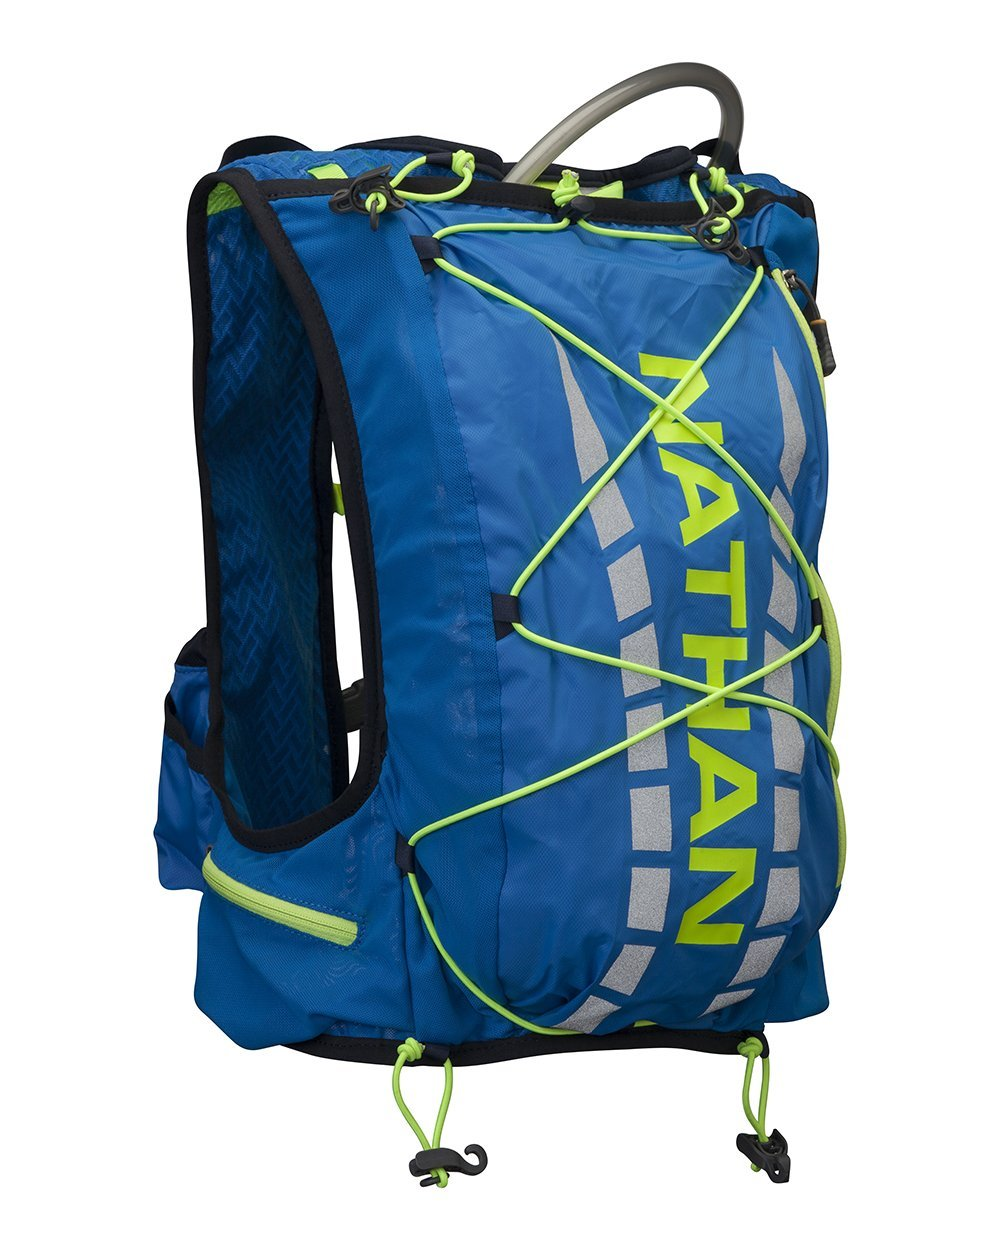 Nathan VaporAir Hydration Pack review